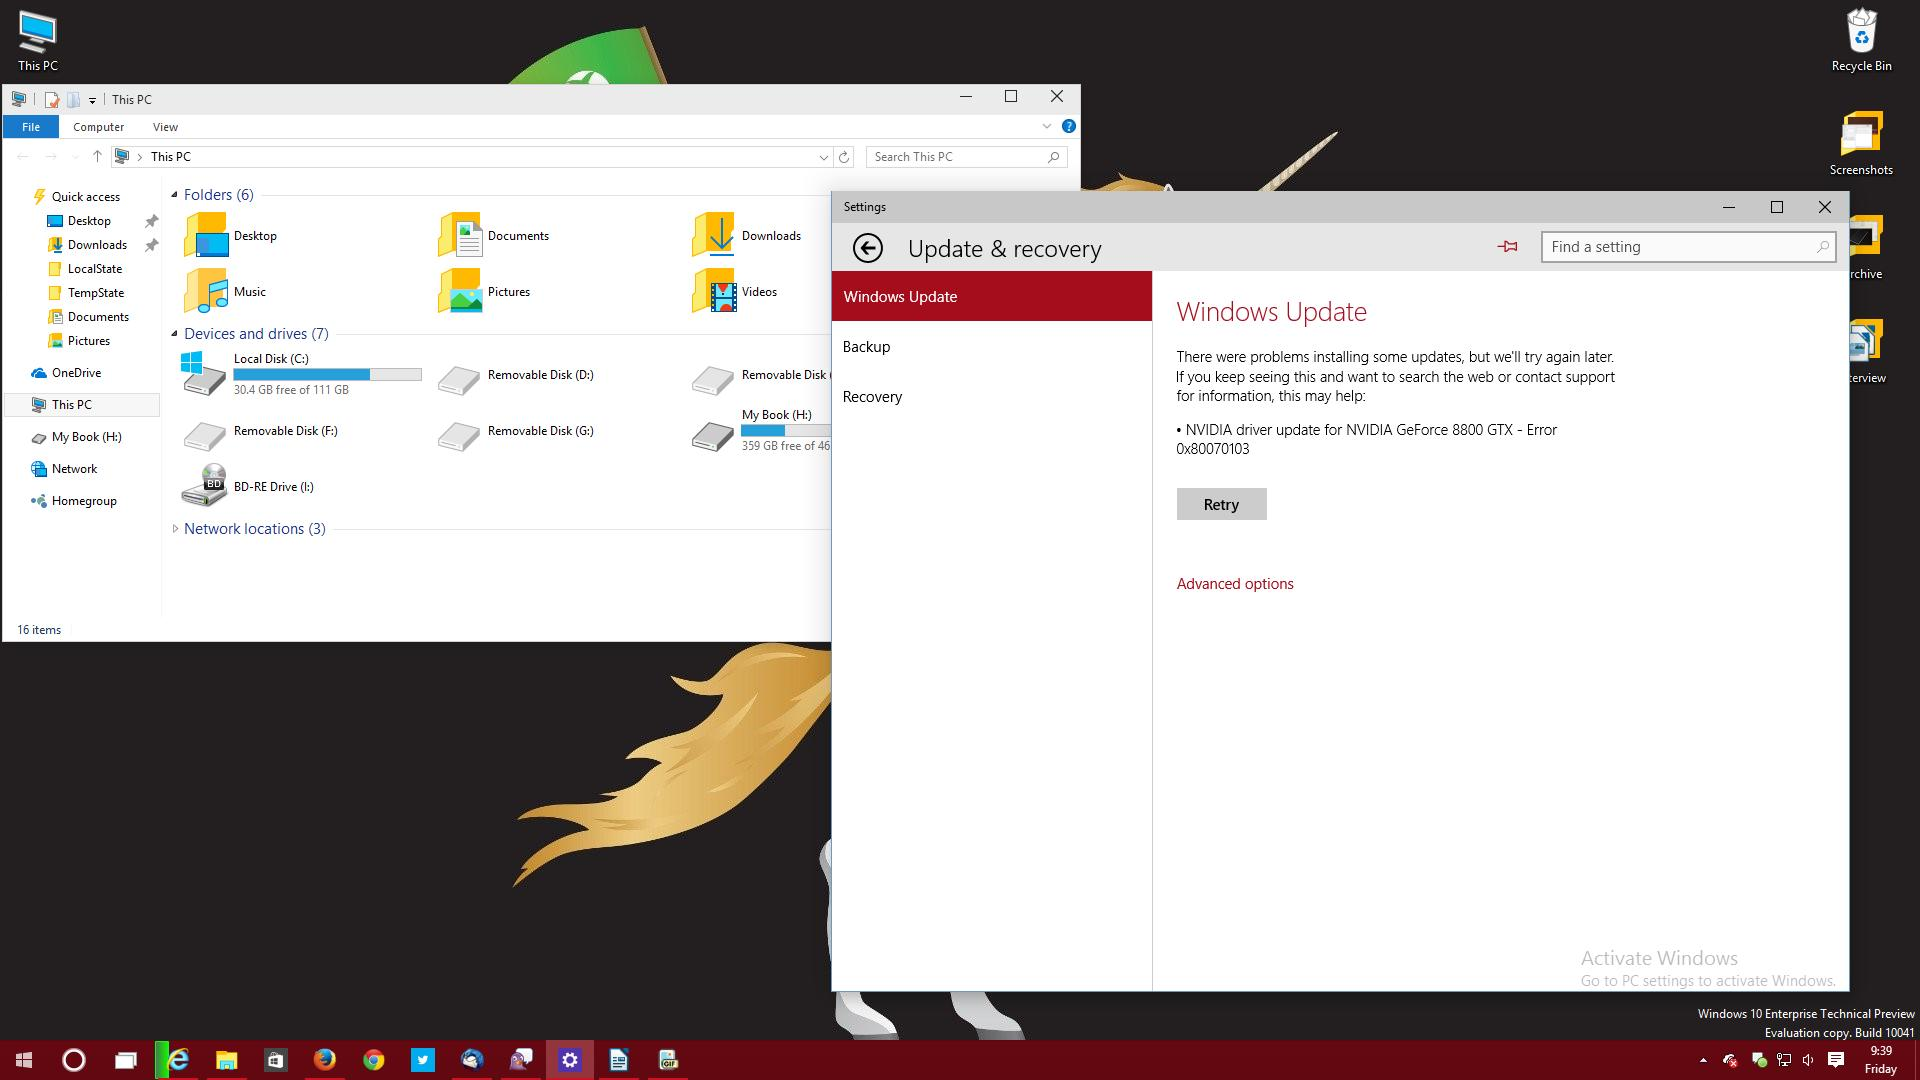 Microsoft fixes bug that keeps users locked out of windows 10 windows update in build 10041 ccuart Image collections